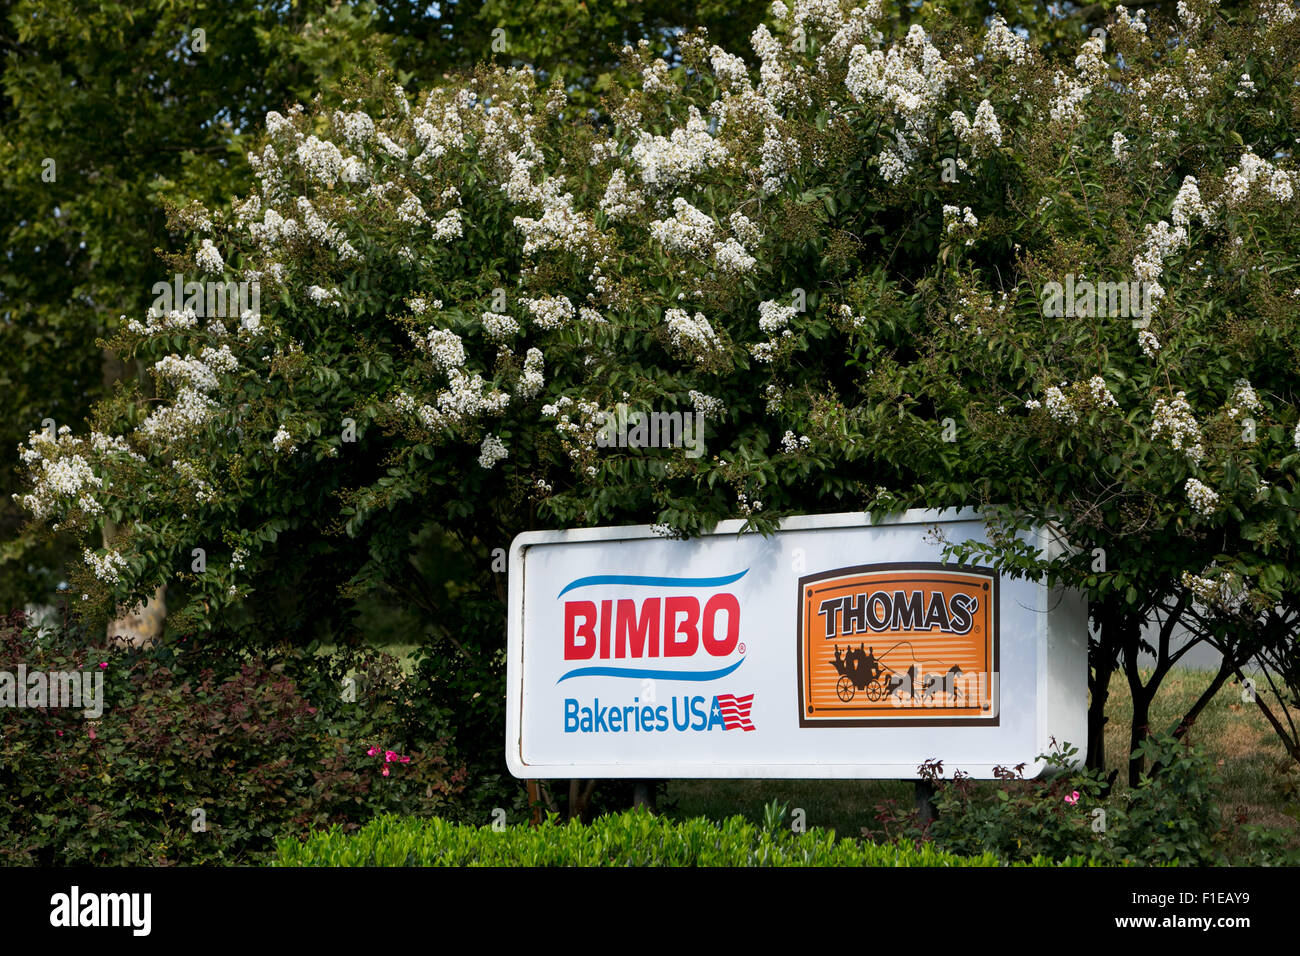 A logo sign outside of a Thomas' English Muffins bakery owned by Bimbo Bakeries USA, in Frederick, Maryland - Stock Image